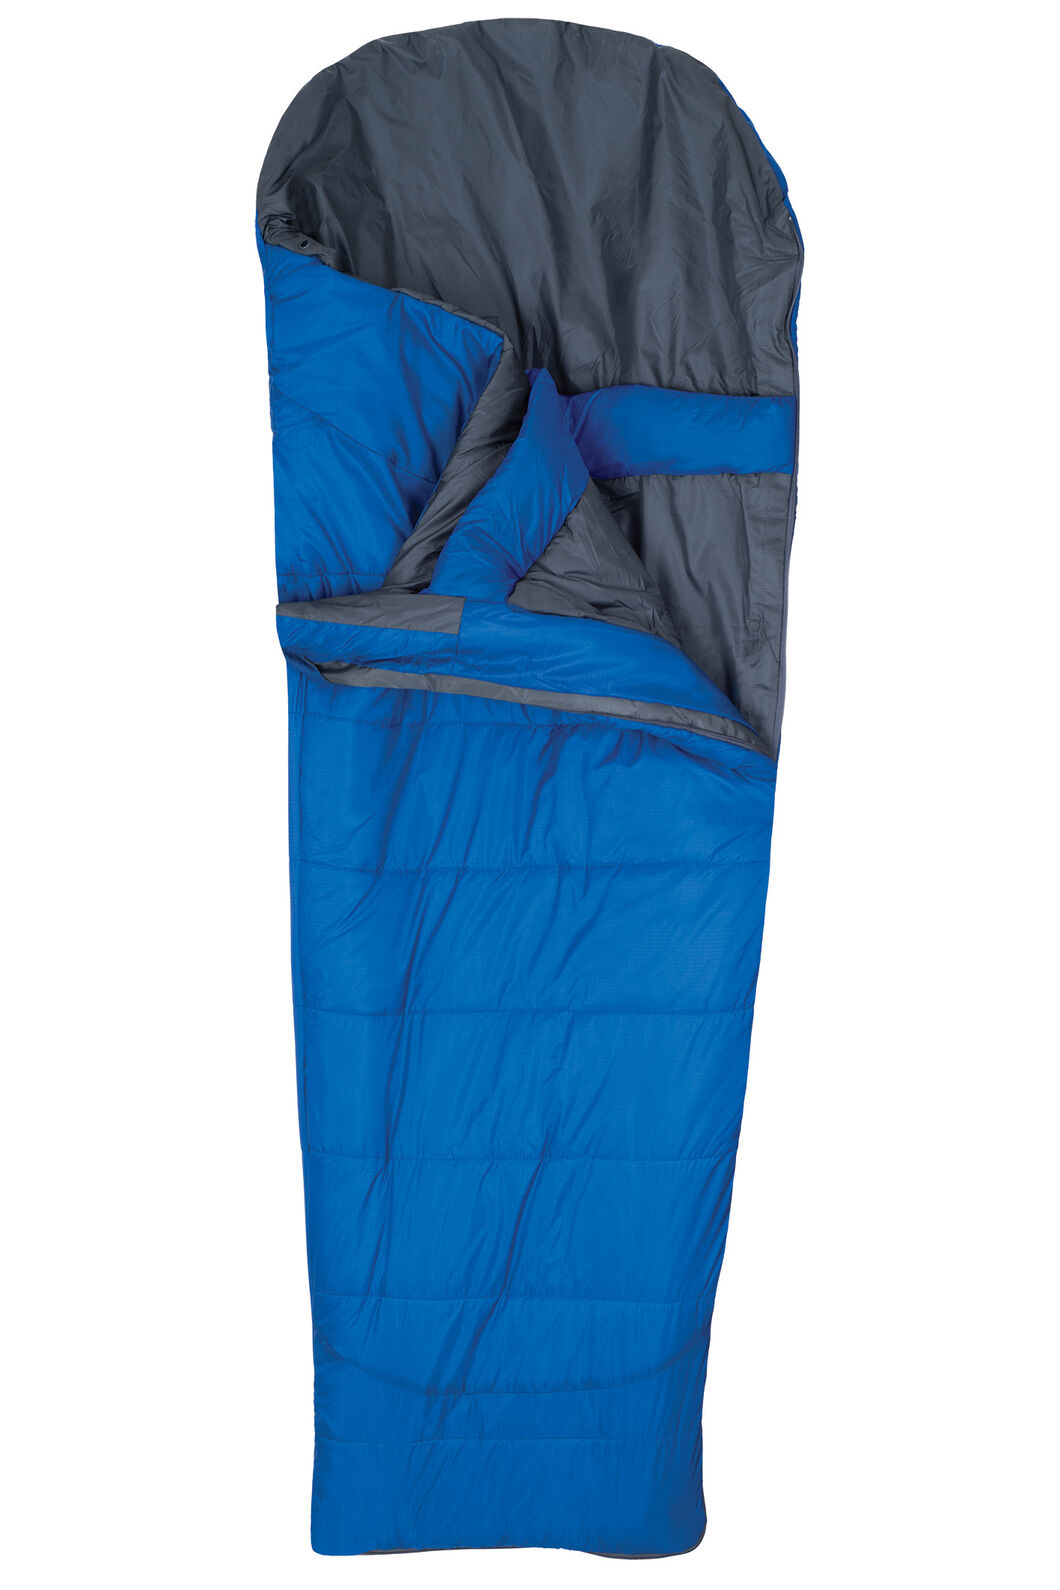 Macpac Roam Synthetic 150 Sleeping Bag - Extra Large, Victoria Blue, hi-res